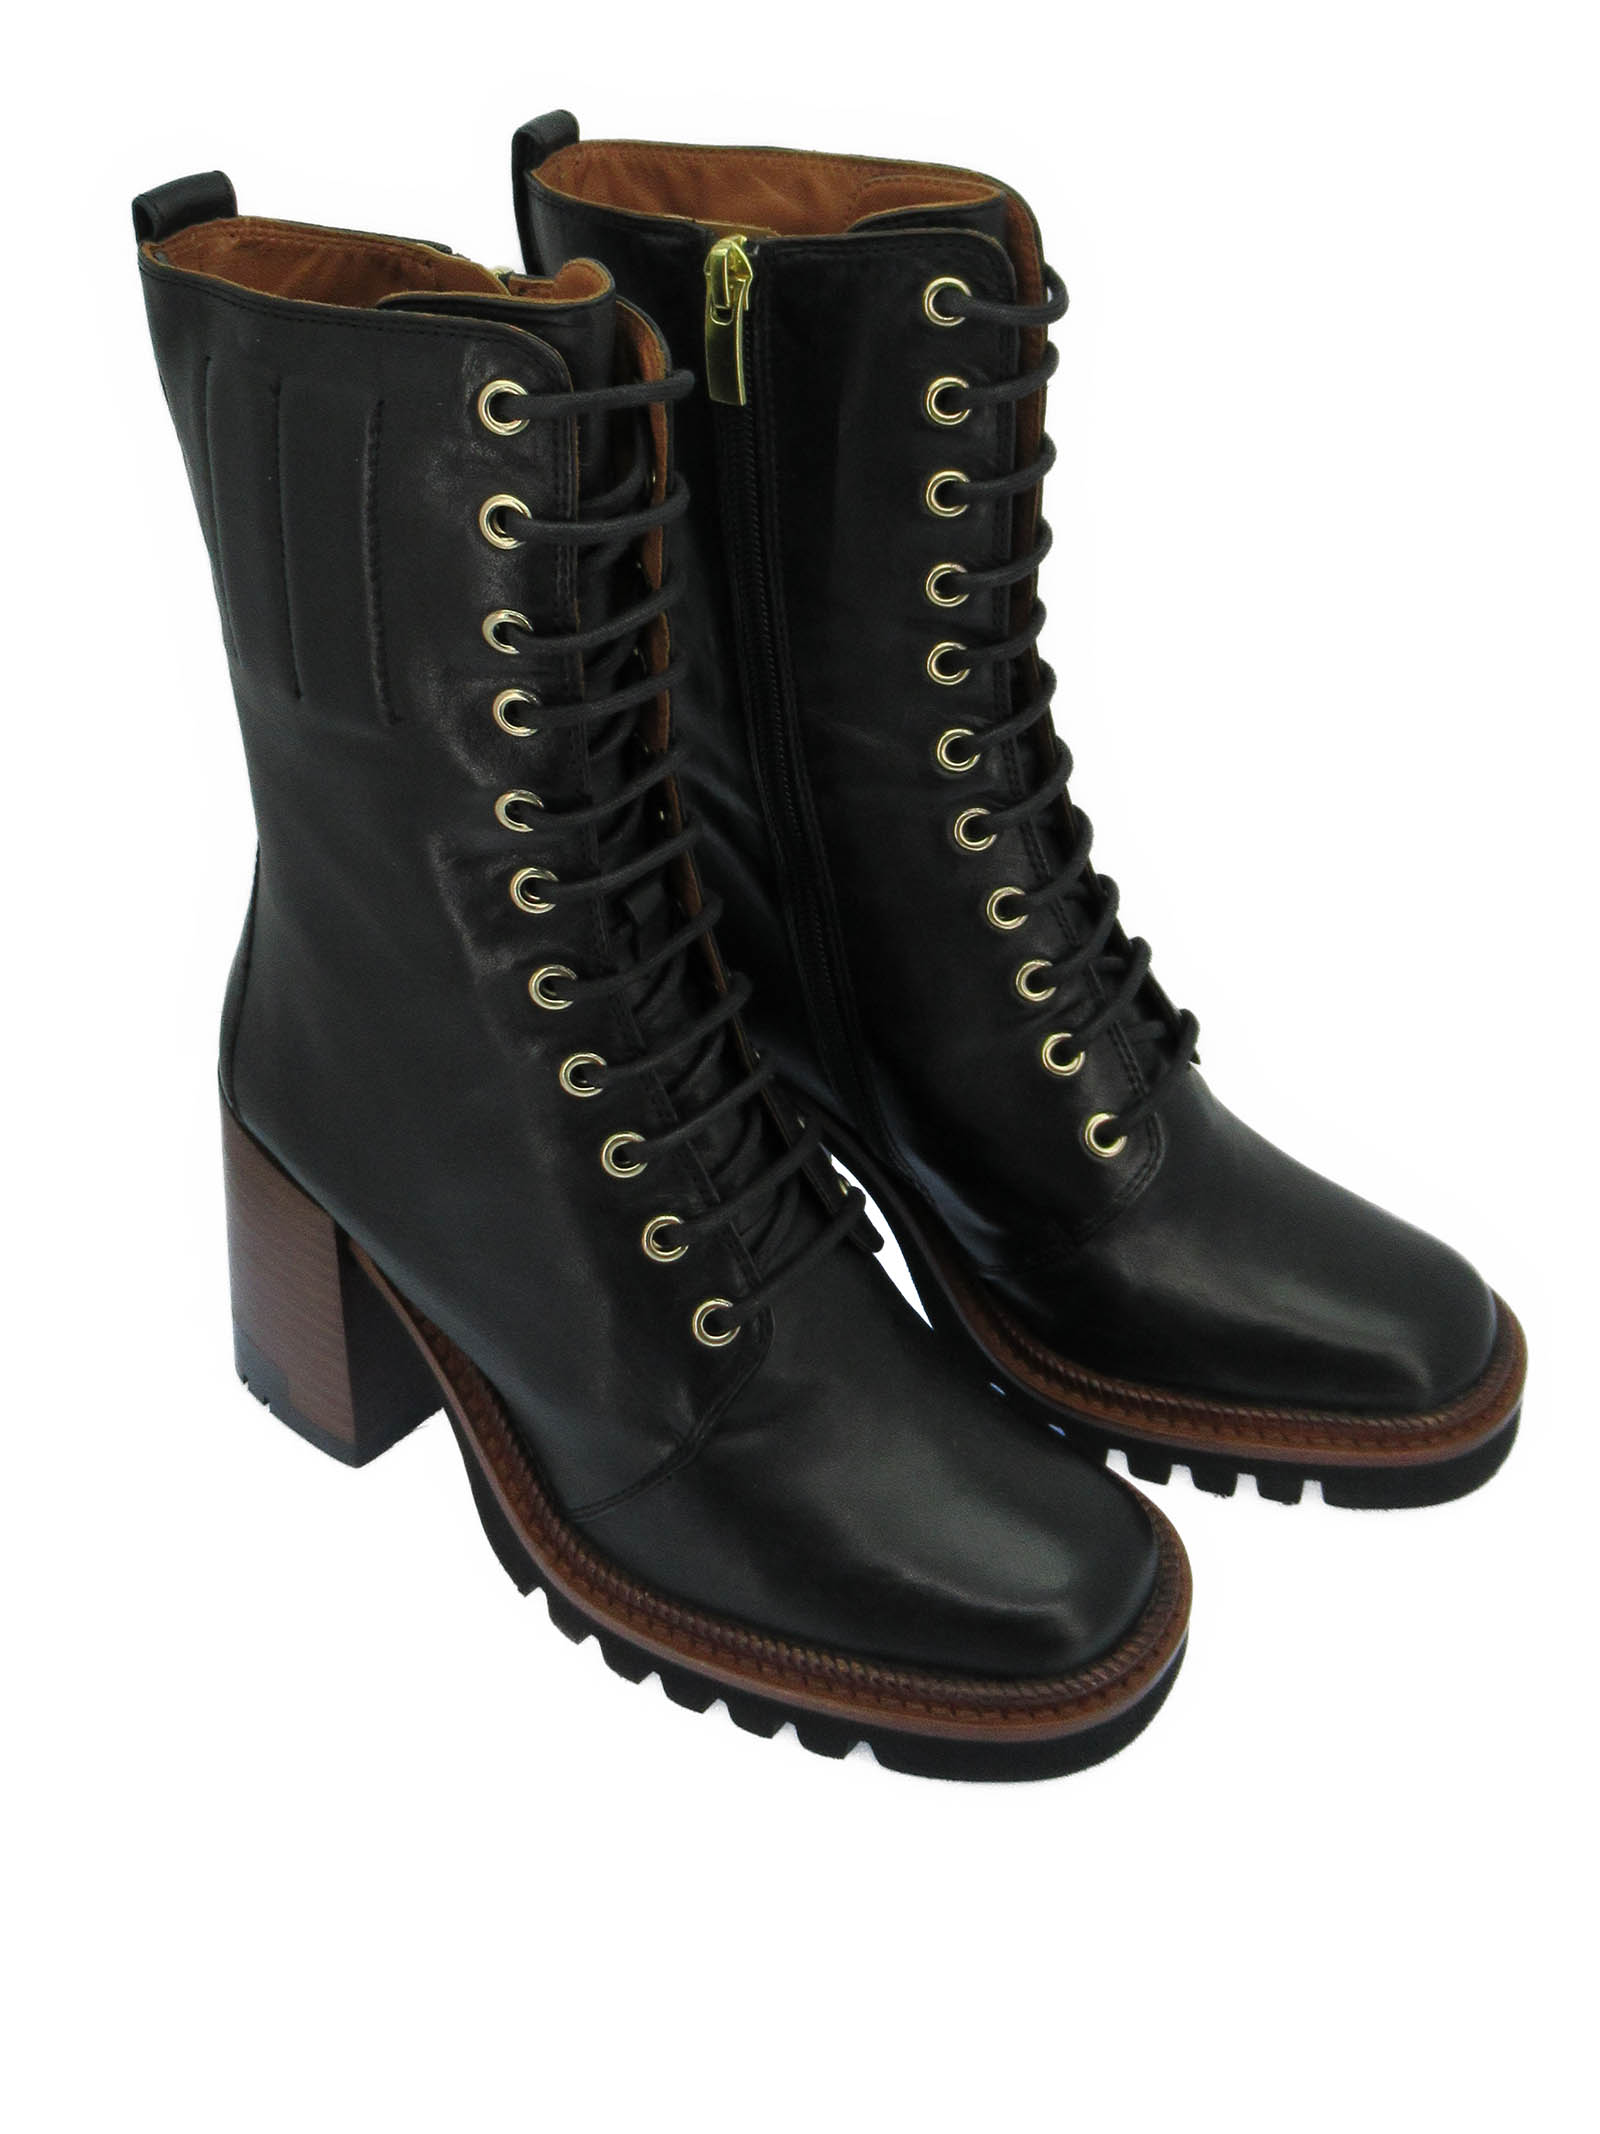 Women's Shoes Amphibious Lace-up Ankle Boots in Black Leather with High Heel and Plateau Tank Bruno Premi | Ankle Boots | BC4704X001